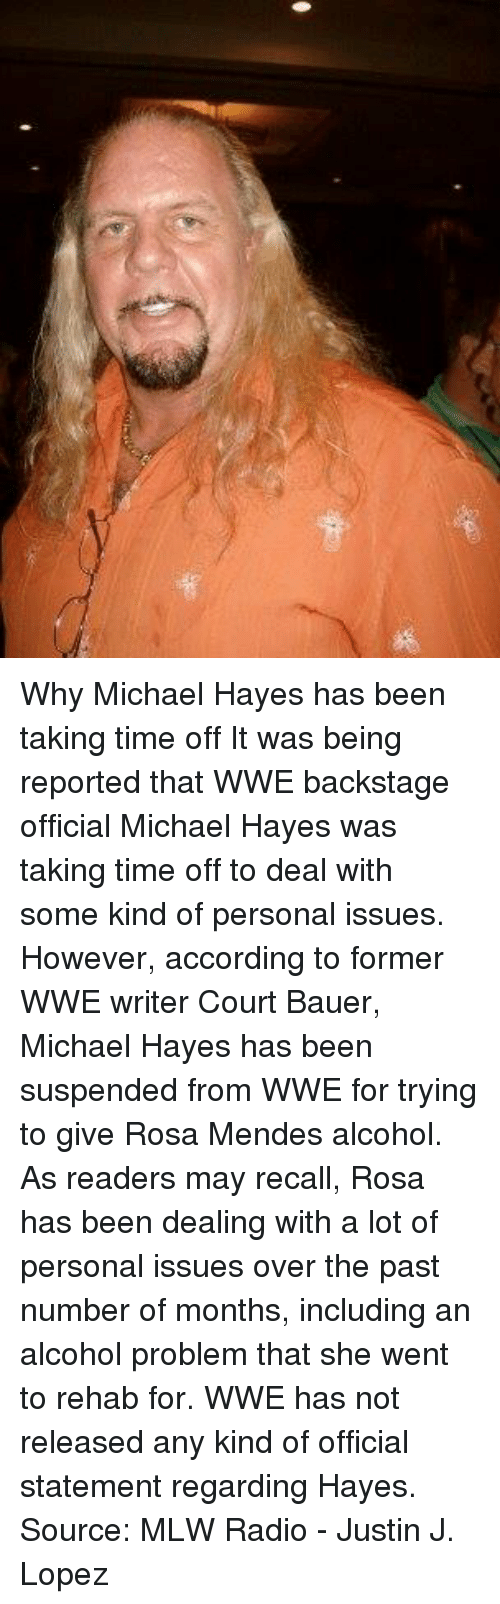 rosa mendes: Why Michael Hayes has been taking time off  It was being reported that WWE backstage official Michael Hayes was taking time off to deal with some kind of personal issues. However, according to former WWE writer Court Bauer, Michael Hayes has been suspended from WWE for trying to give Rosa Mendes alcohol. As readers may recall, Rosa has been dealing with a lot of personal issues over the past number of months, including an alcohol problem that she went to rehab for.  WWE has not released any kind of official statement regarding Hayes.  Source: MLW Radio   - Justin J. Lopez